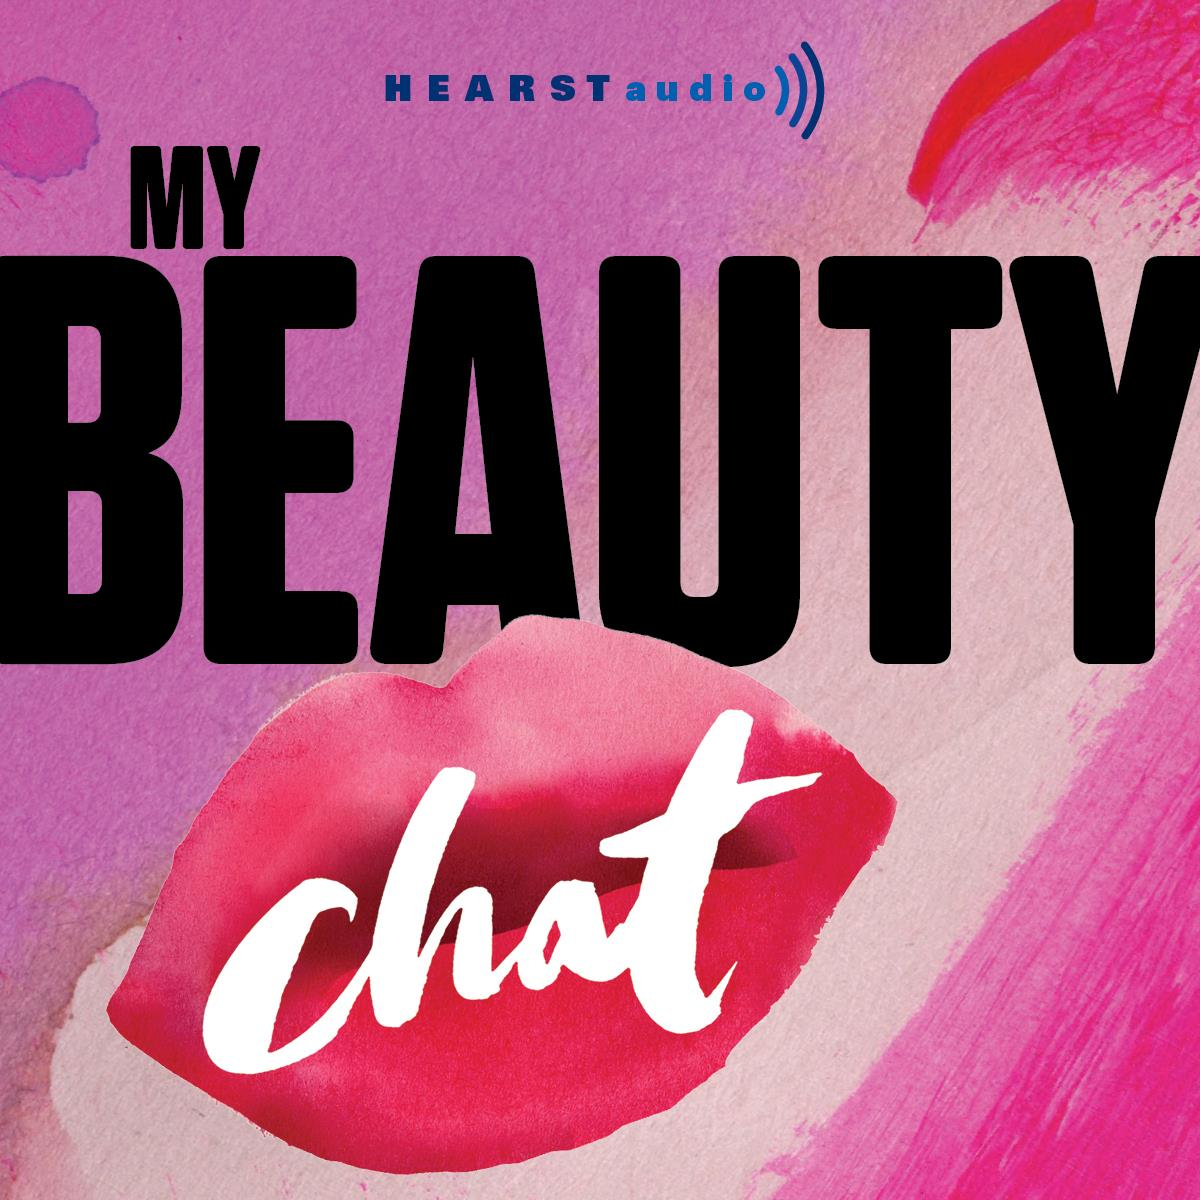 My Beauty chat ()